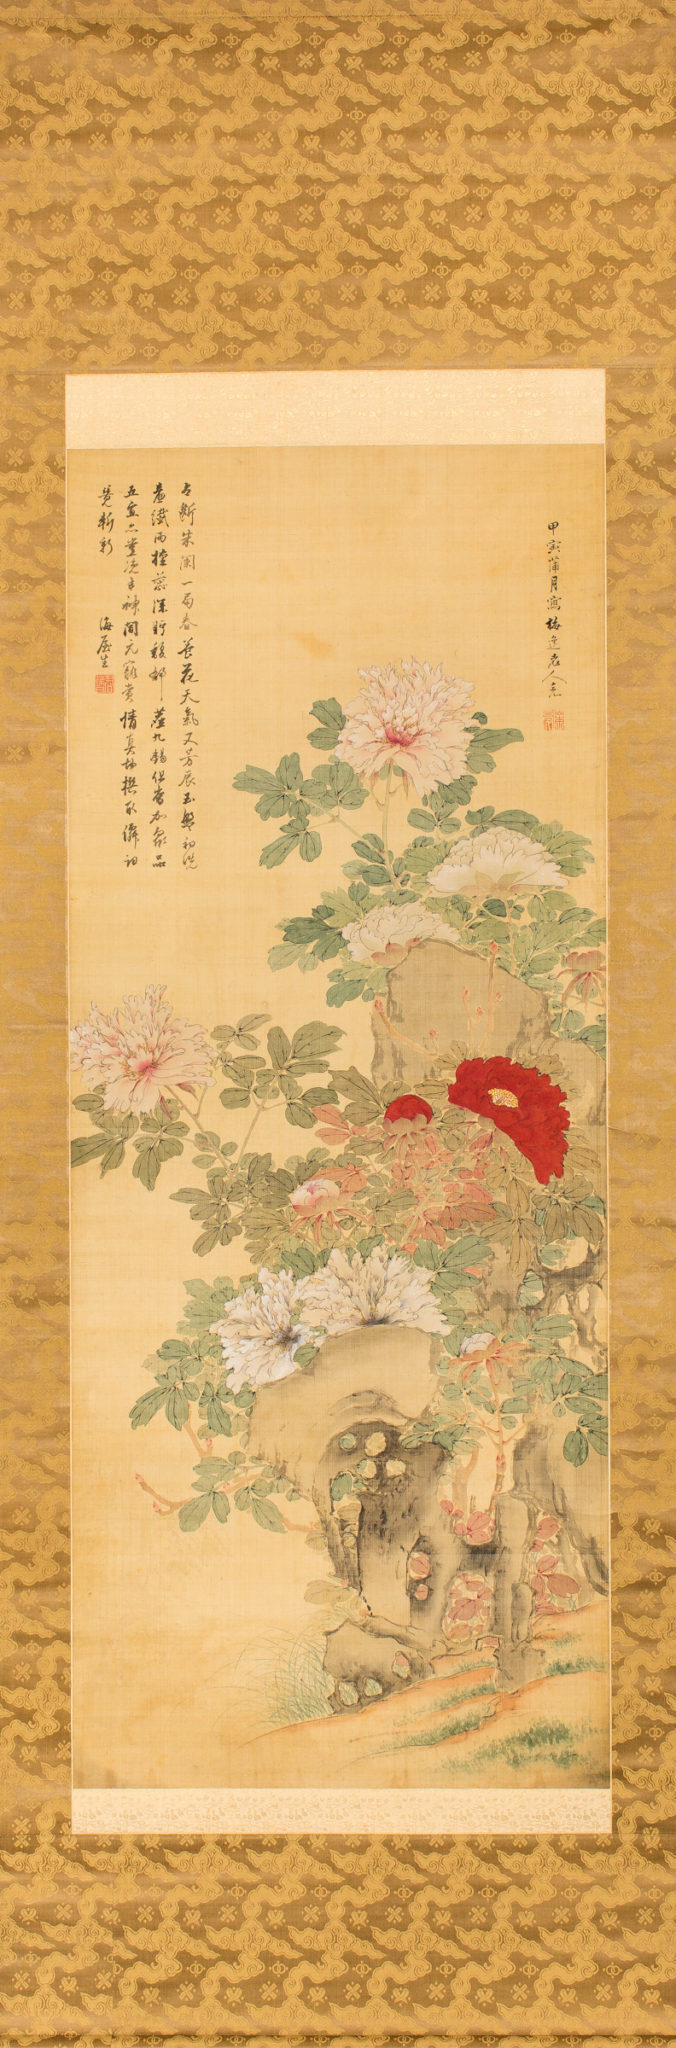 Japanese Scroll, Japanese Scrolls, Japanese Painting, Japanese Paintings, Japanese Art, Antique Japanese Painting, Japanese Antique, Japanese Antiques, Kakemono, Kakejiku